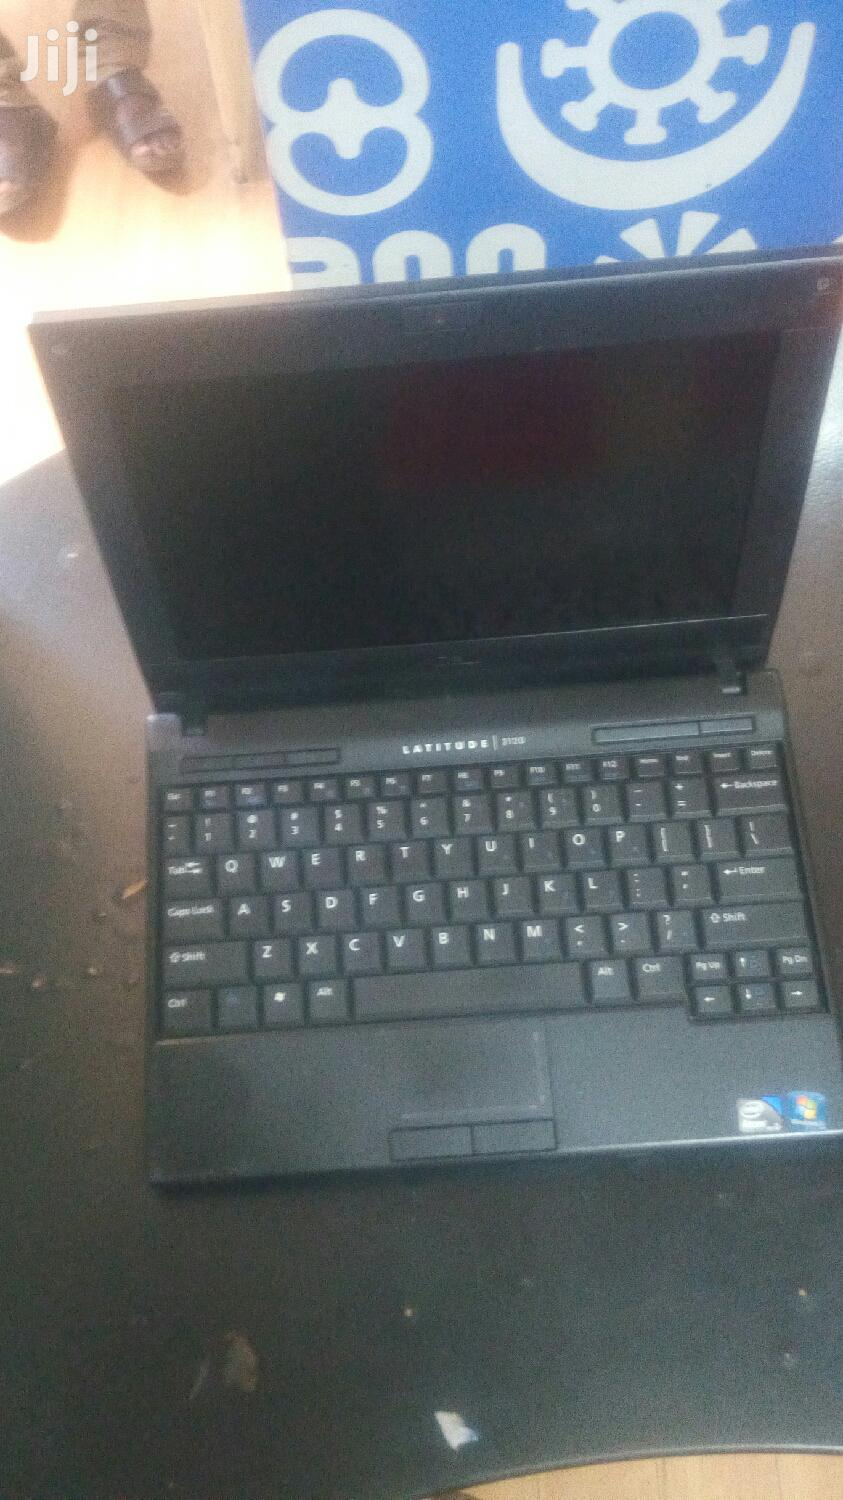 Laptop Dell Latitude 2120 2GB Intel HDD 320GB   Laptops & Computers for sale in Adabraka, Greater Accra, Ghana